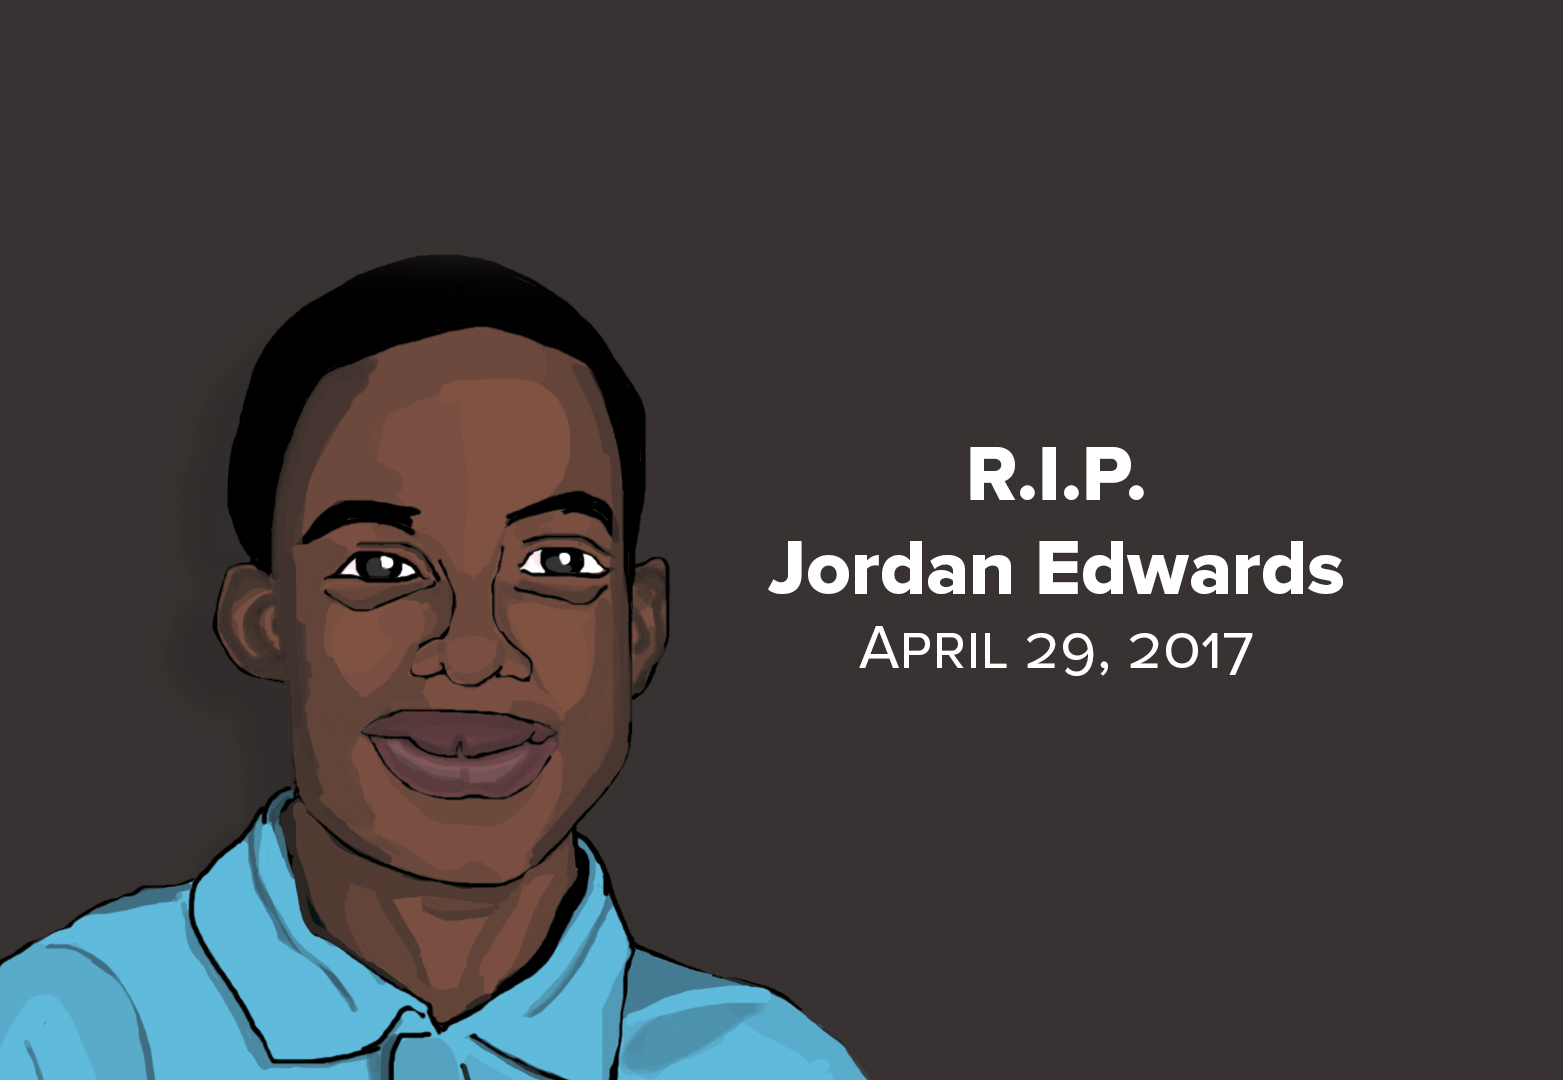 Here's How People Are Reacting To Roy Oliver Being Found Guilty Of Jordan Edwards' Murder